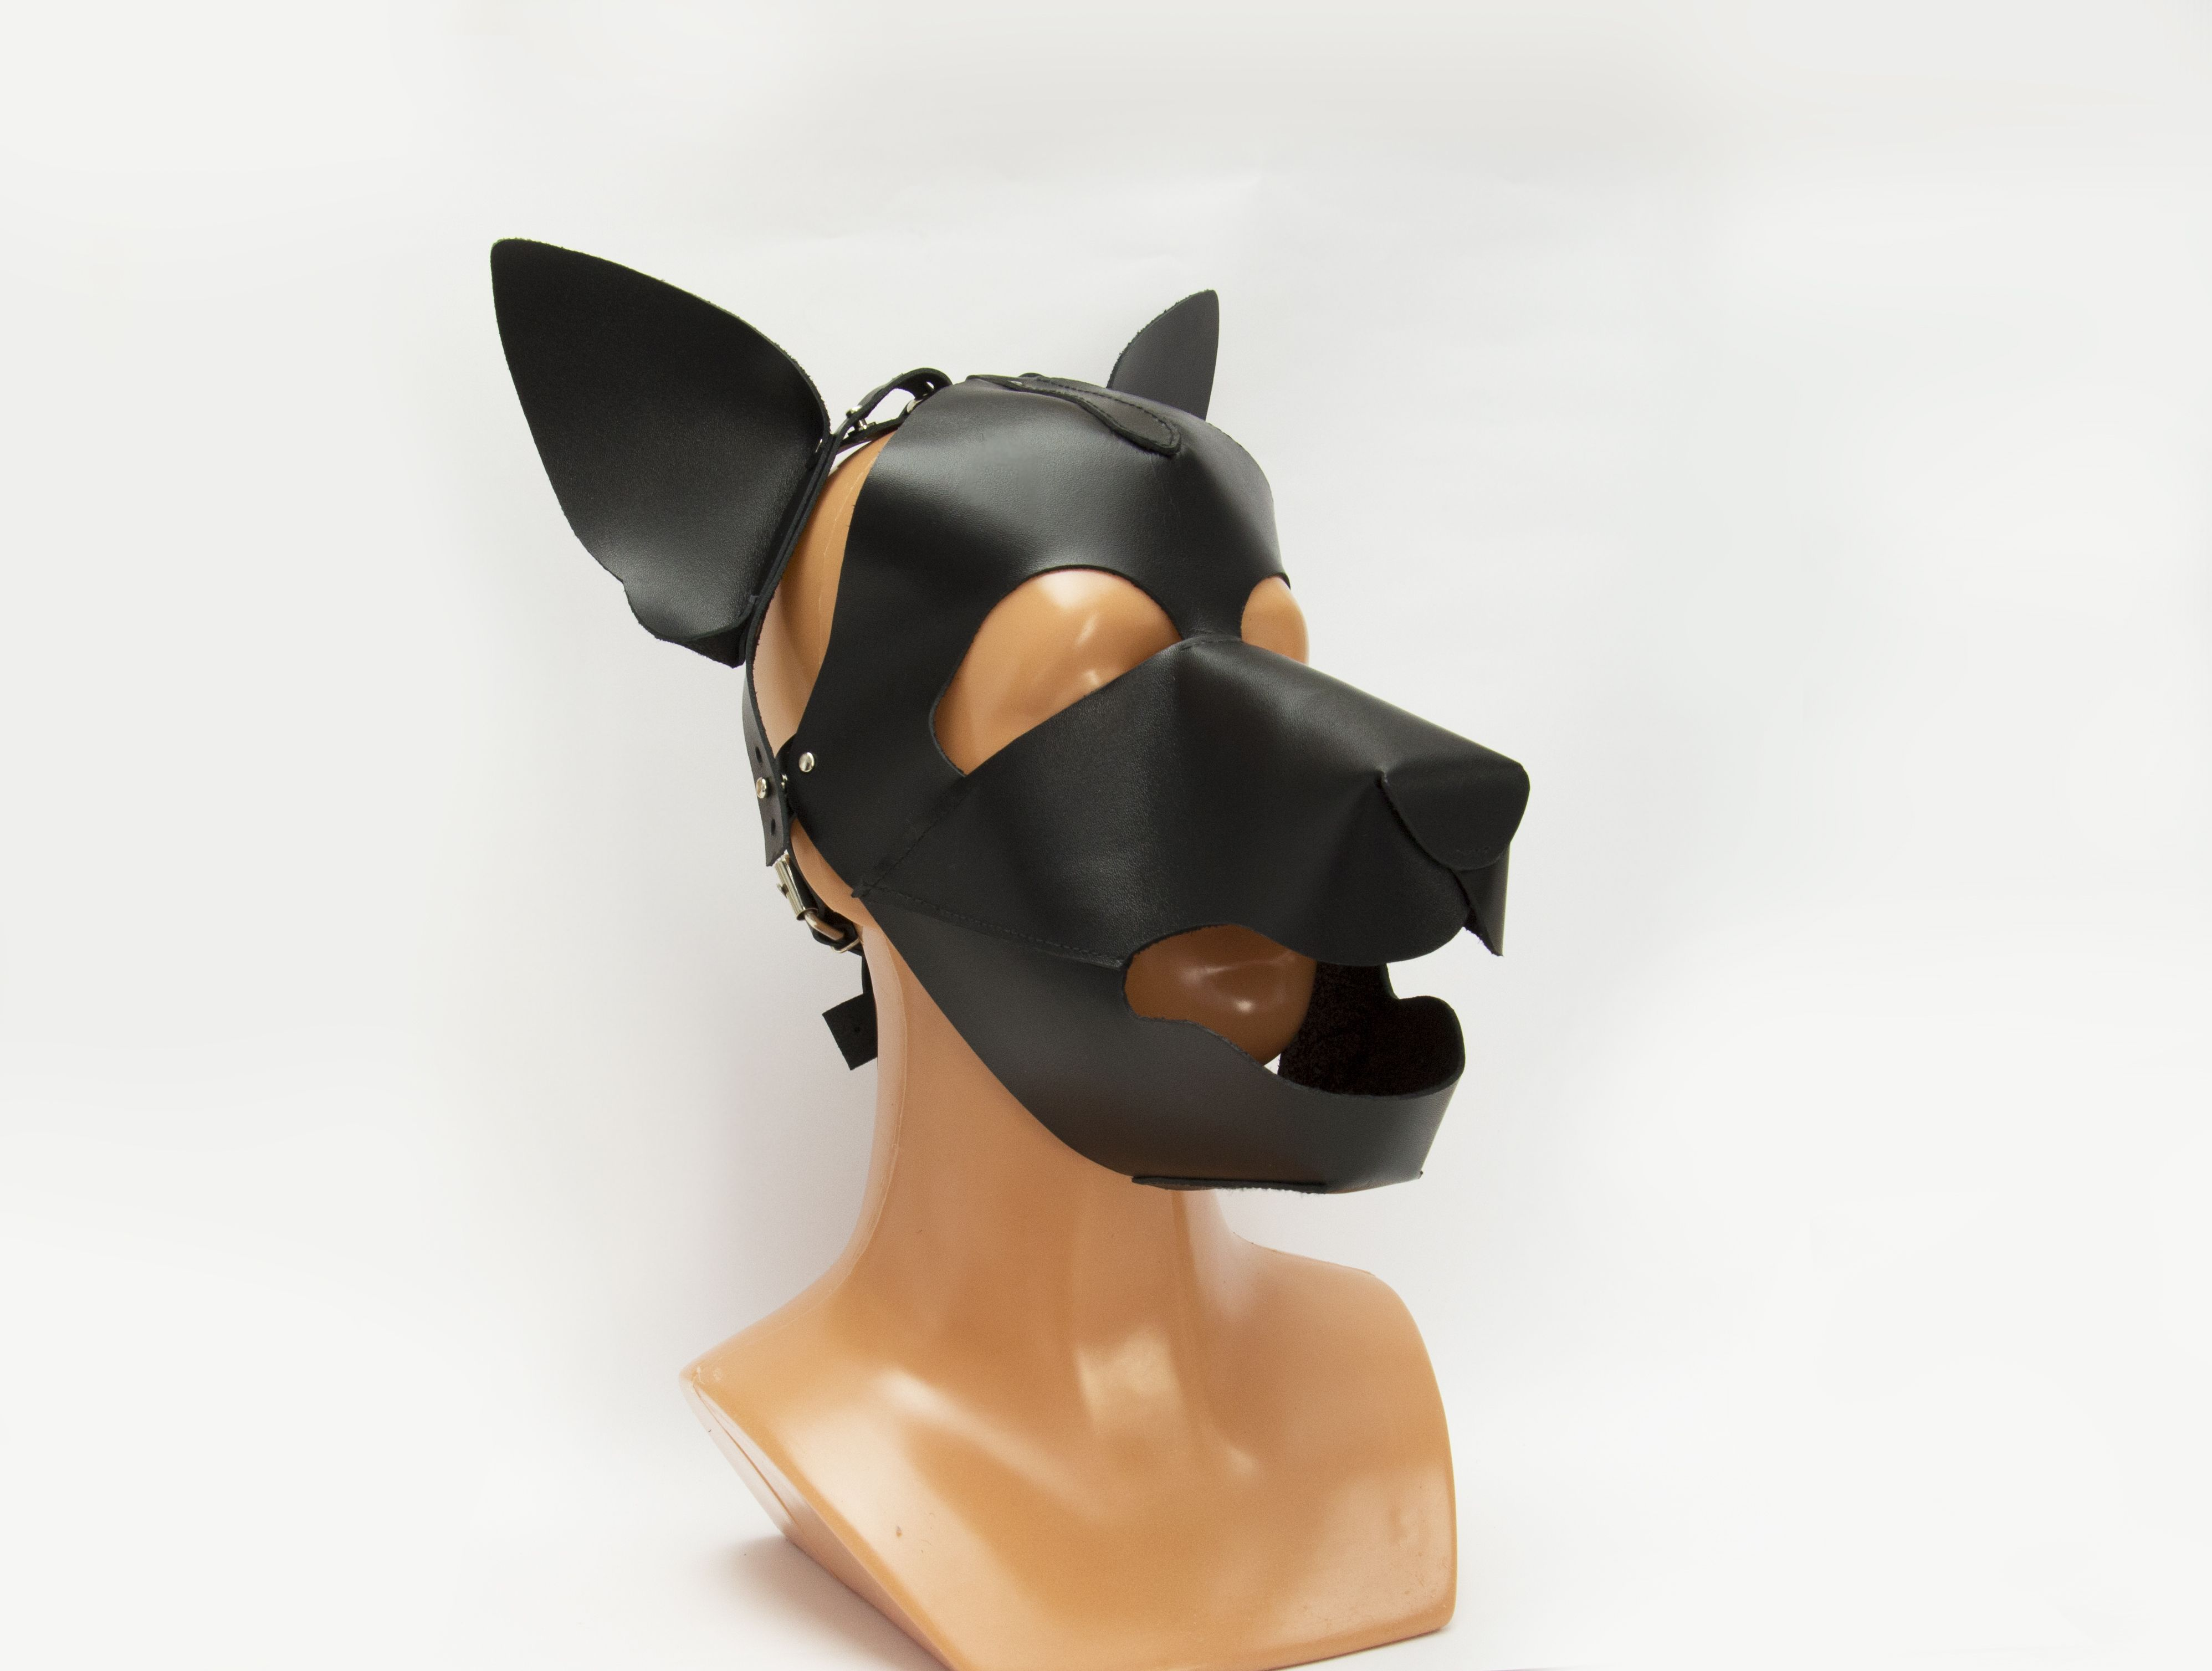 Canine roleplay fetish gear images 773